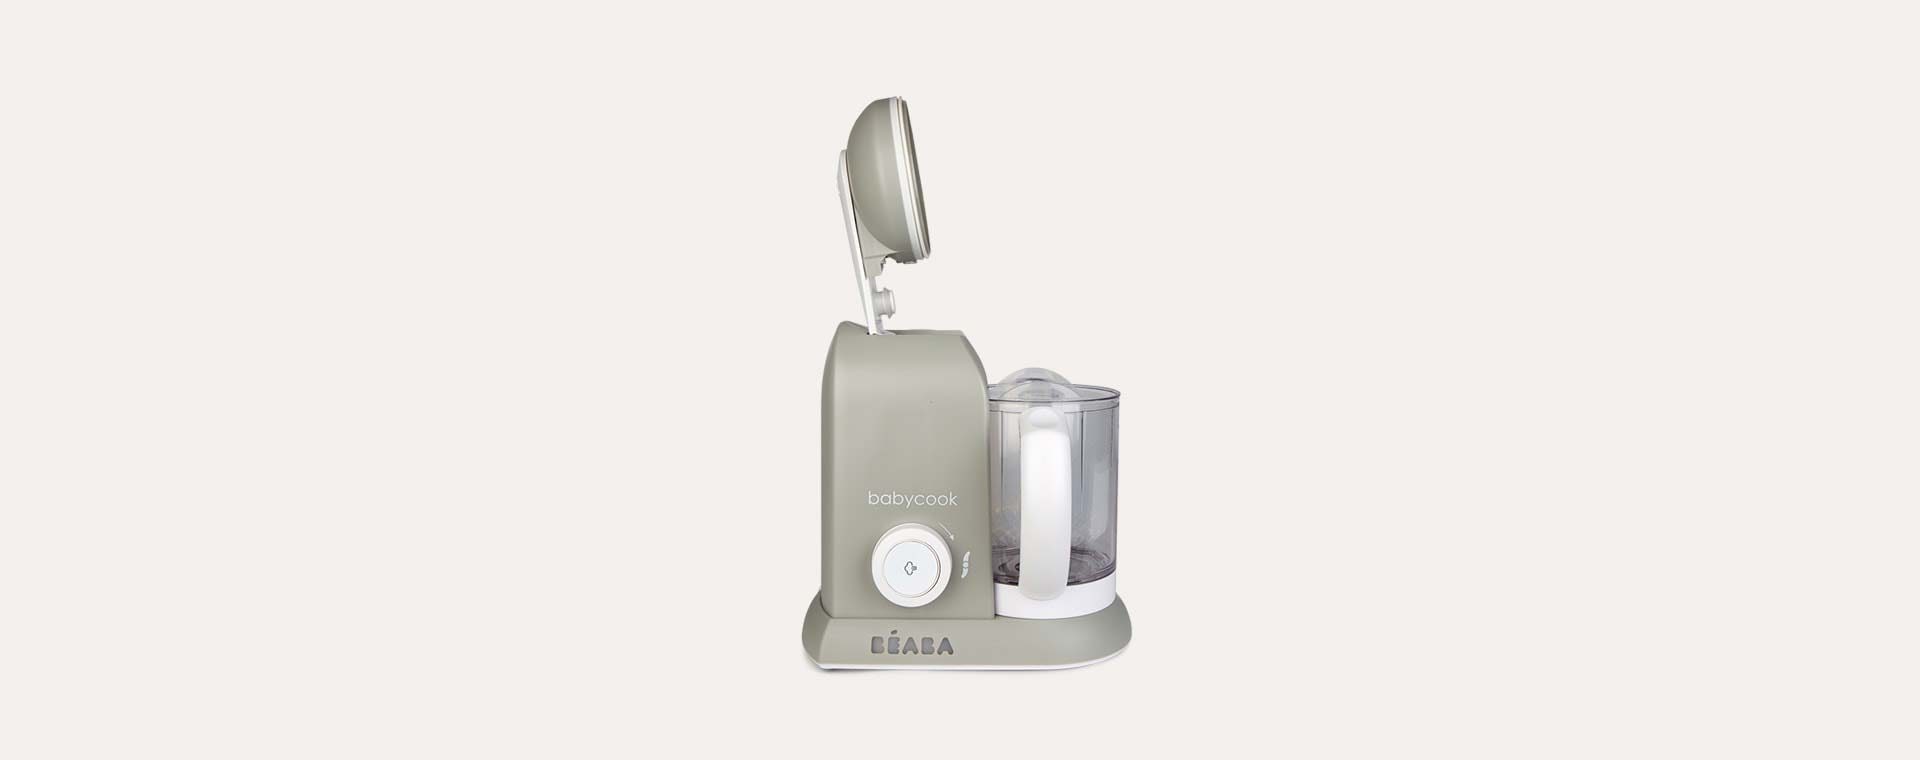 Grey Beaba Babycook 4-in-1 Food Processor